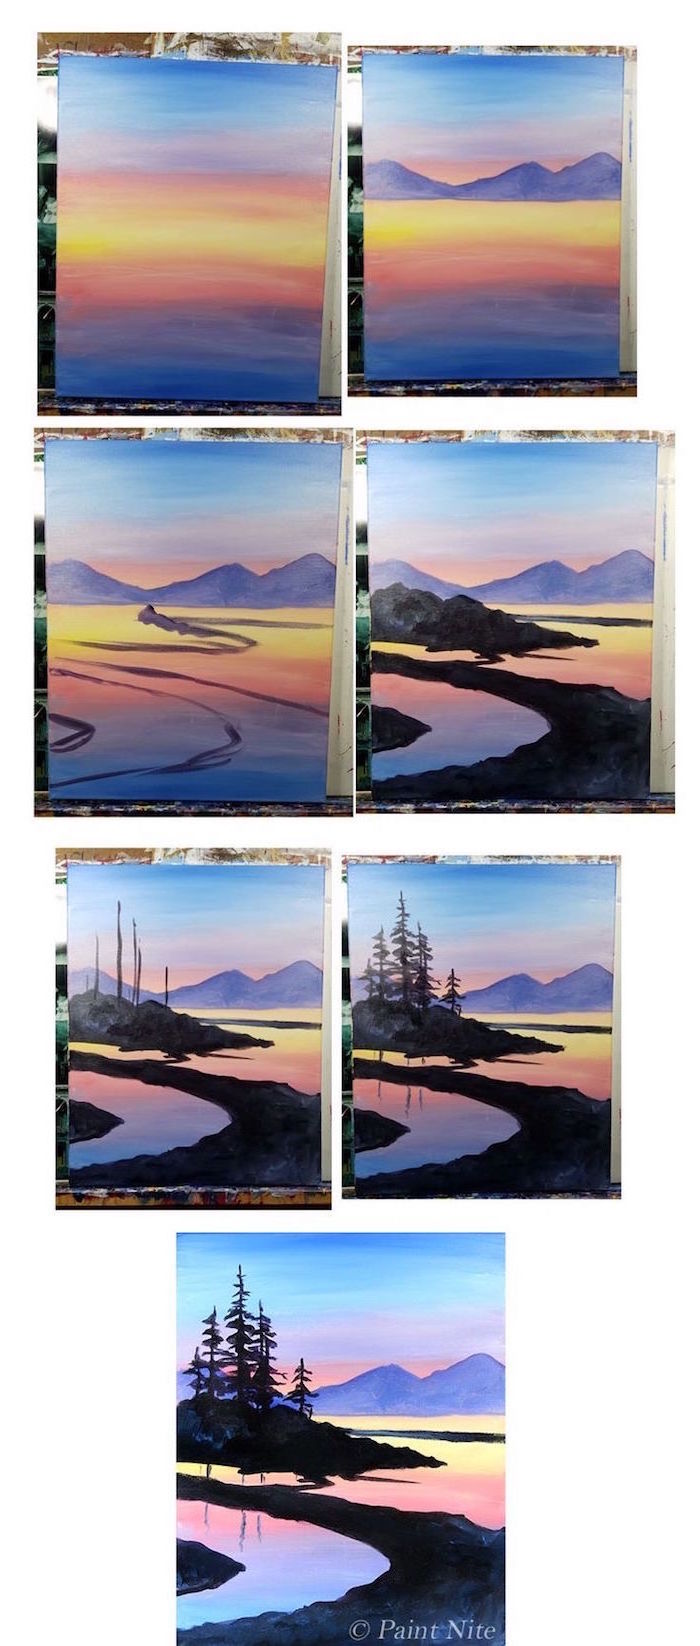 lake landscape, mountains in the background, simple watercolor ideas, painted at sunset